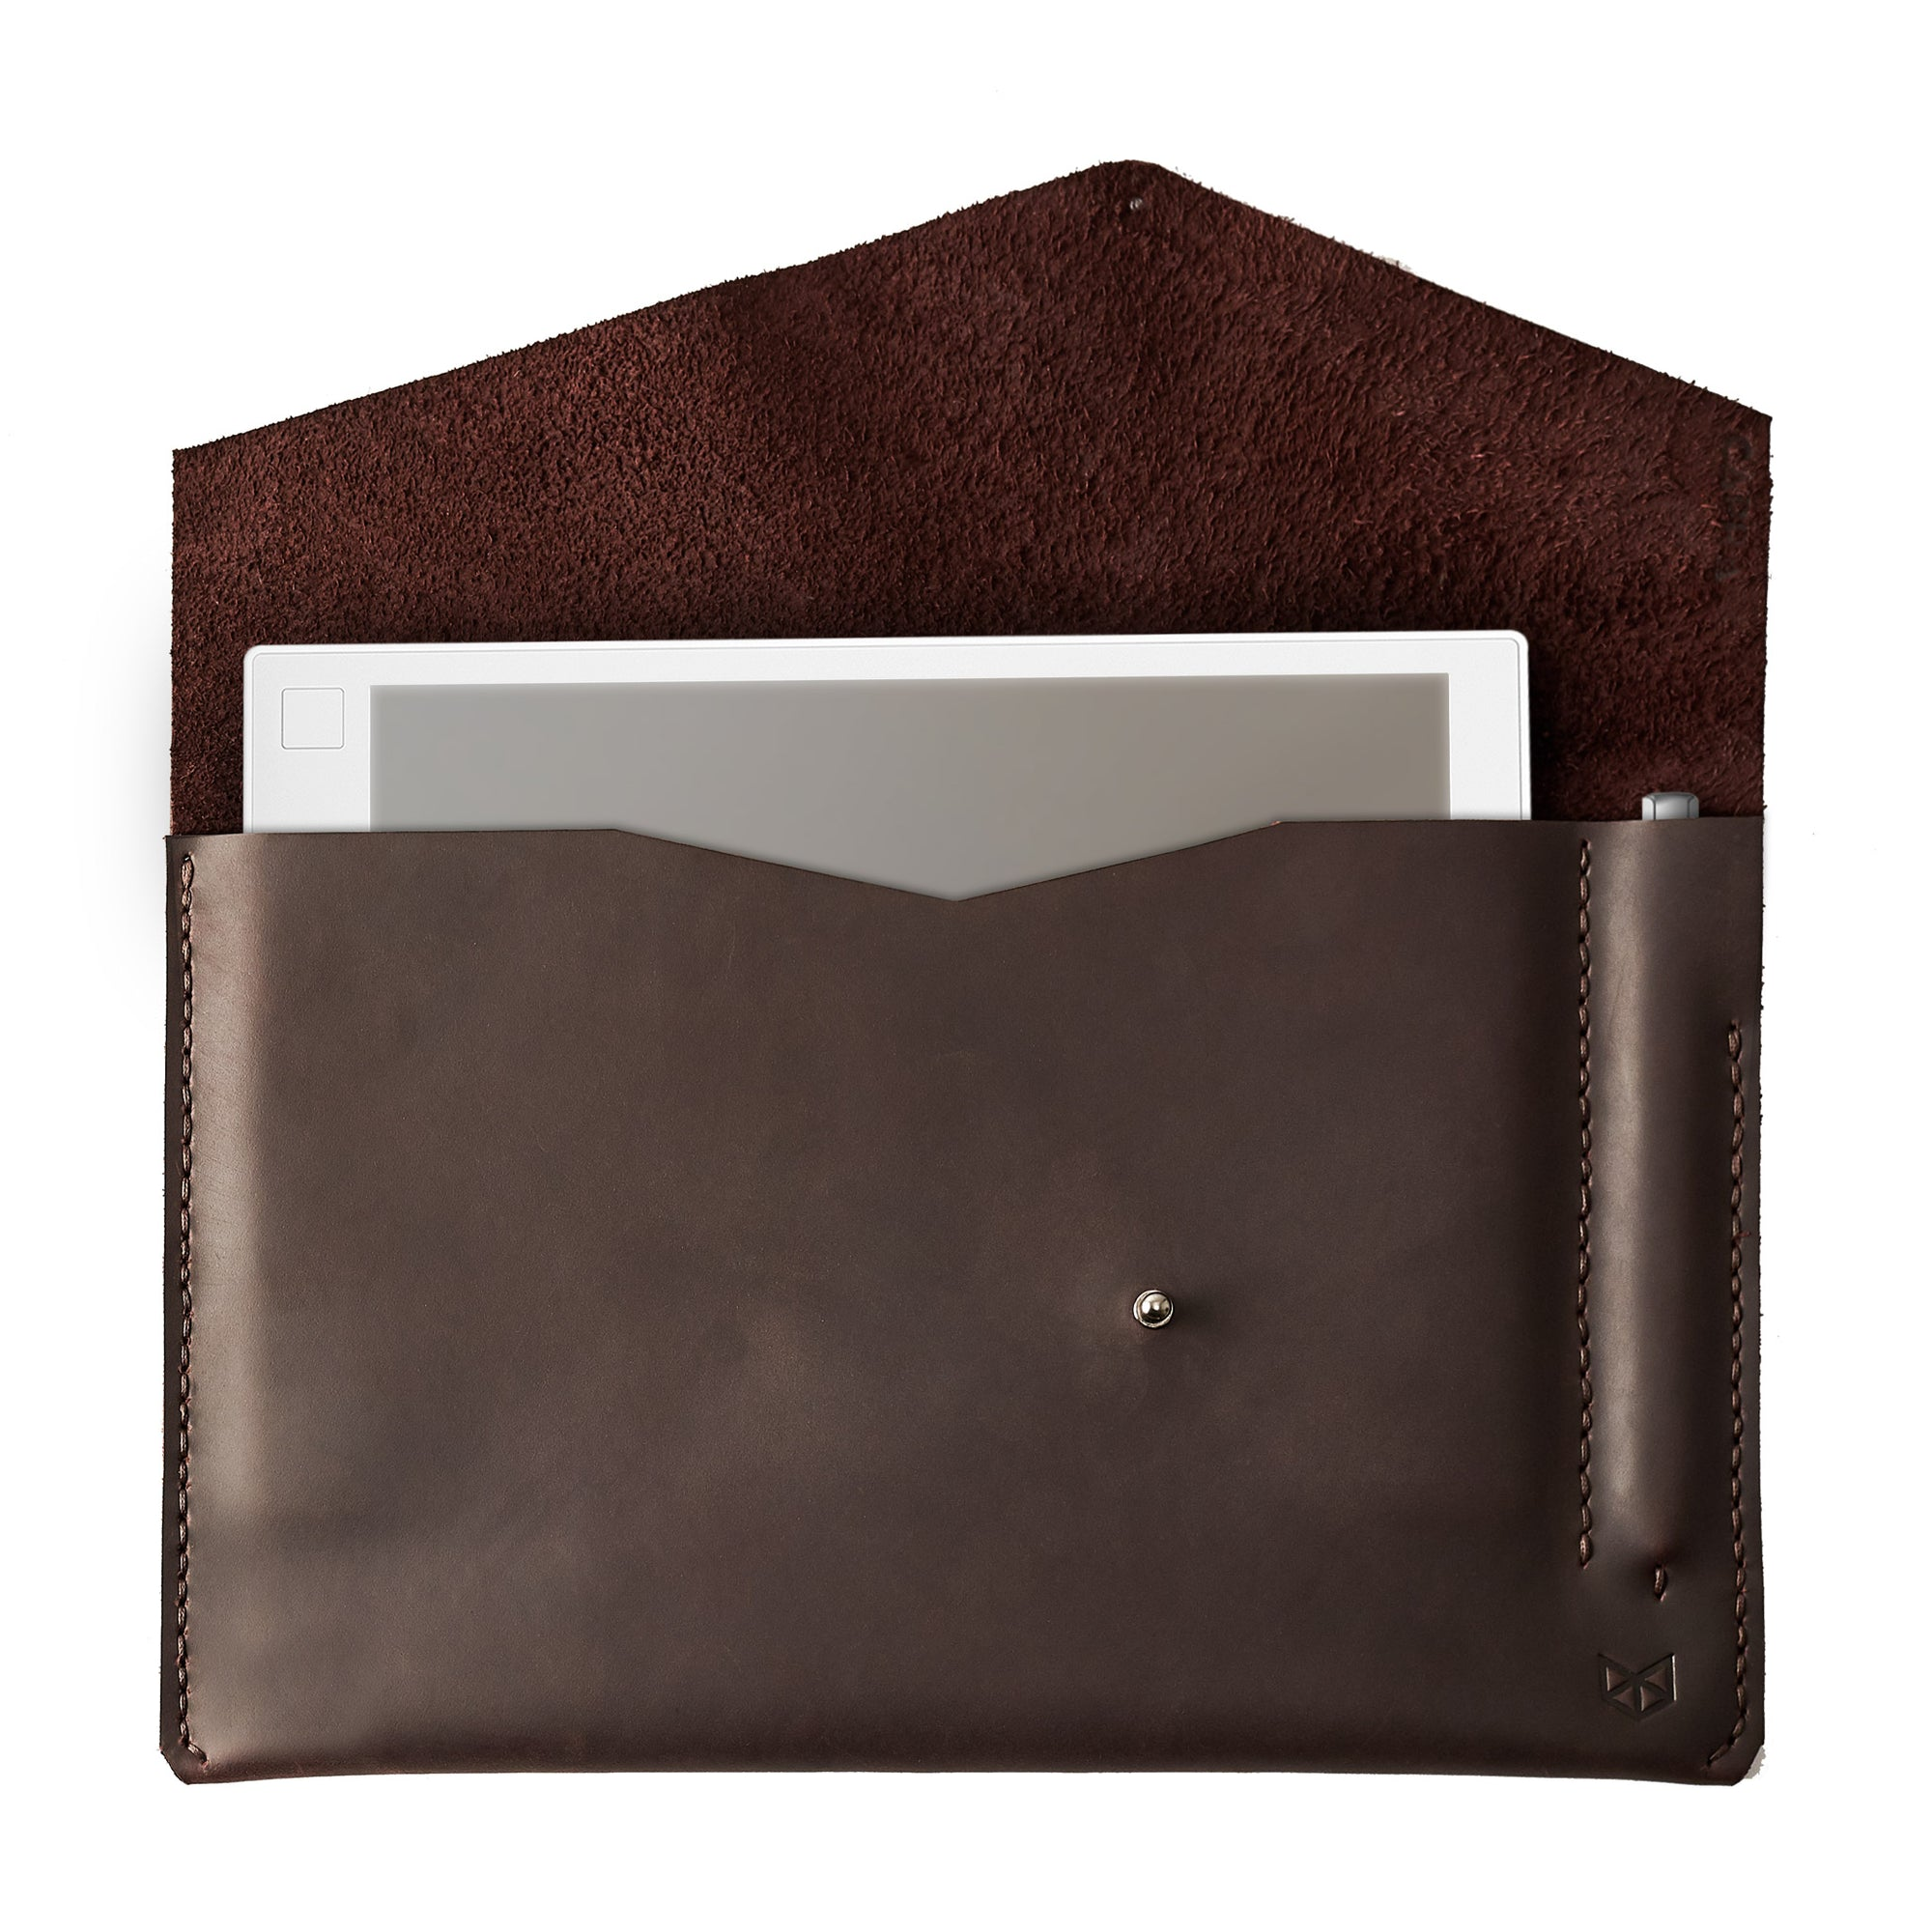 Cover. Dark brown handcrafted leather reMarkable tablet case. Folio with Marker holder. Paper E-ink tablet minimalist sleeve design.